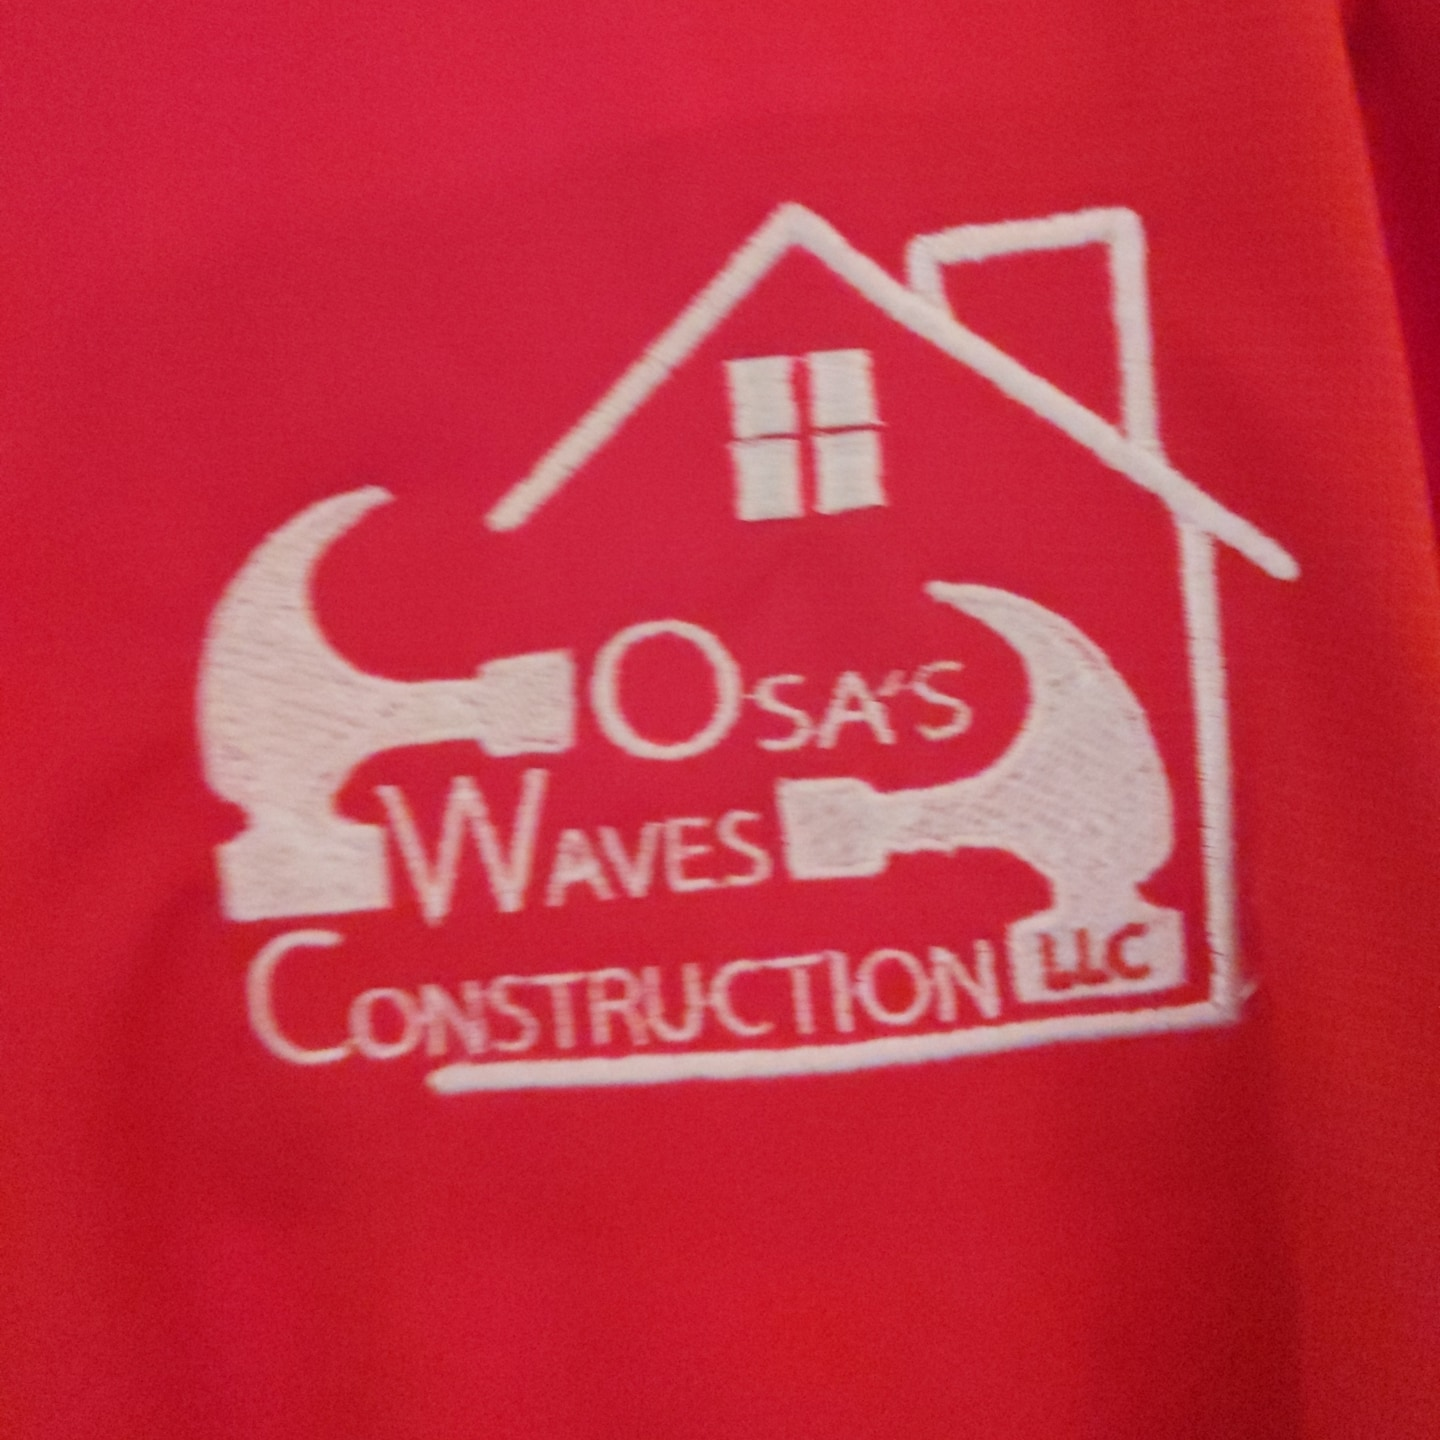 Osas Construction LLC